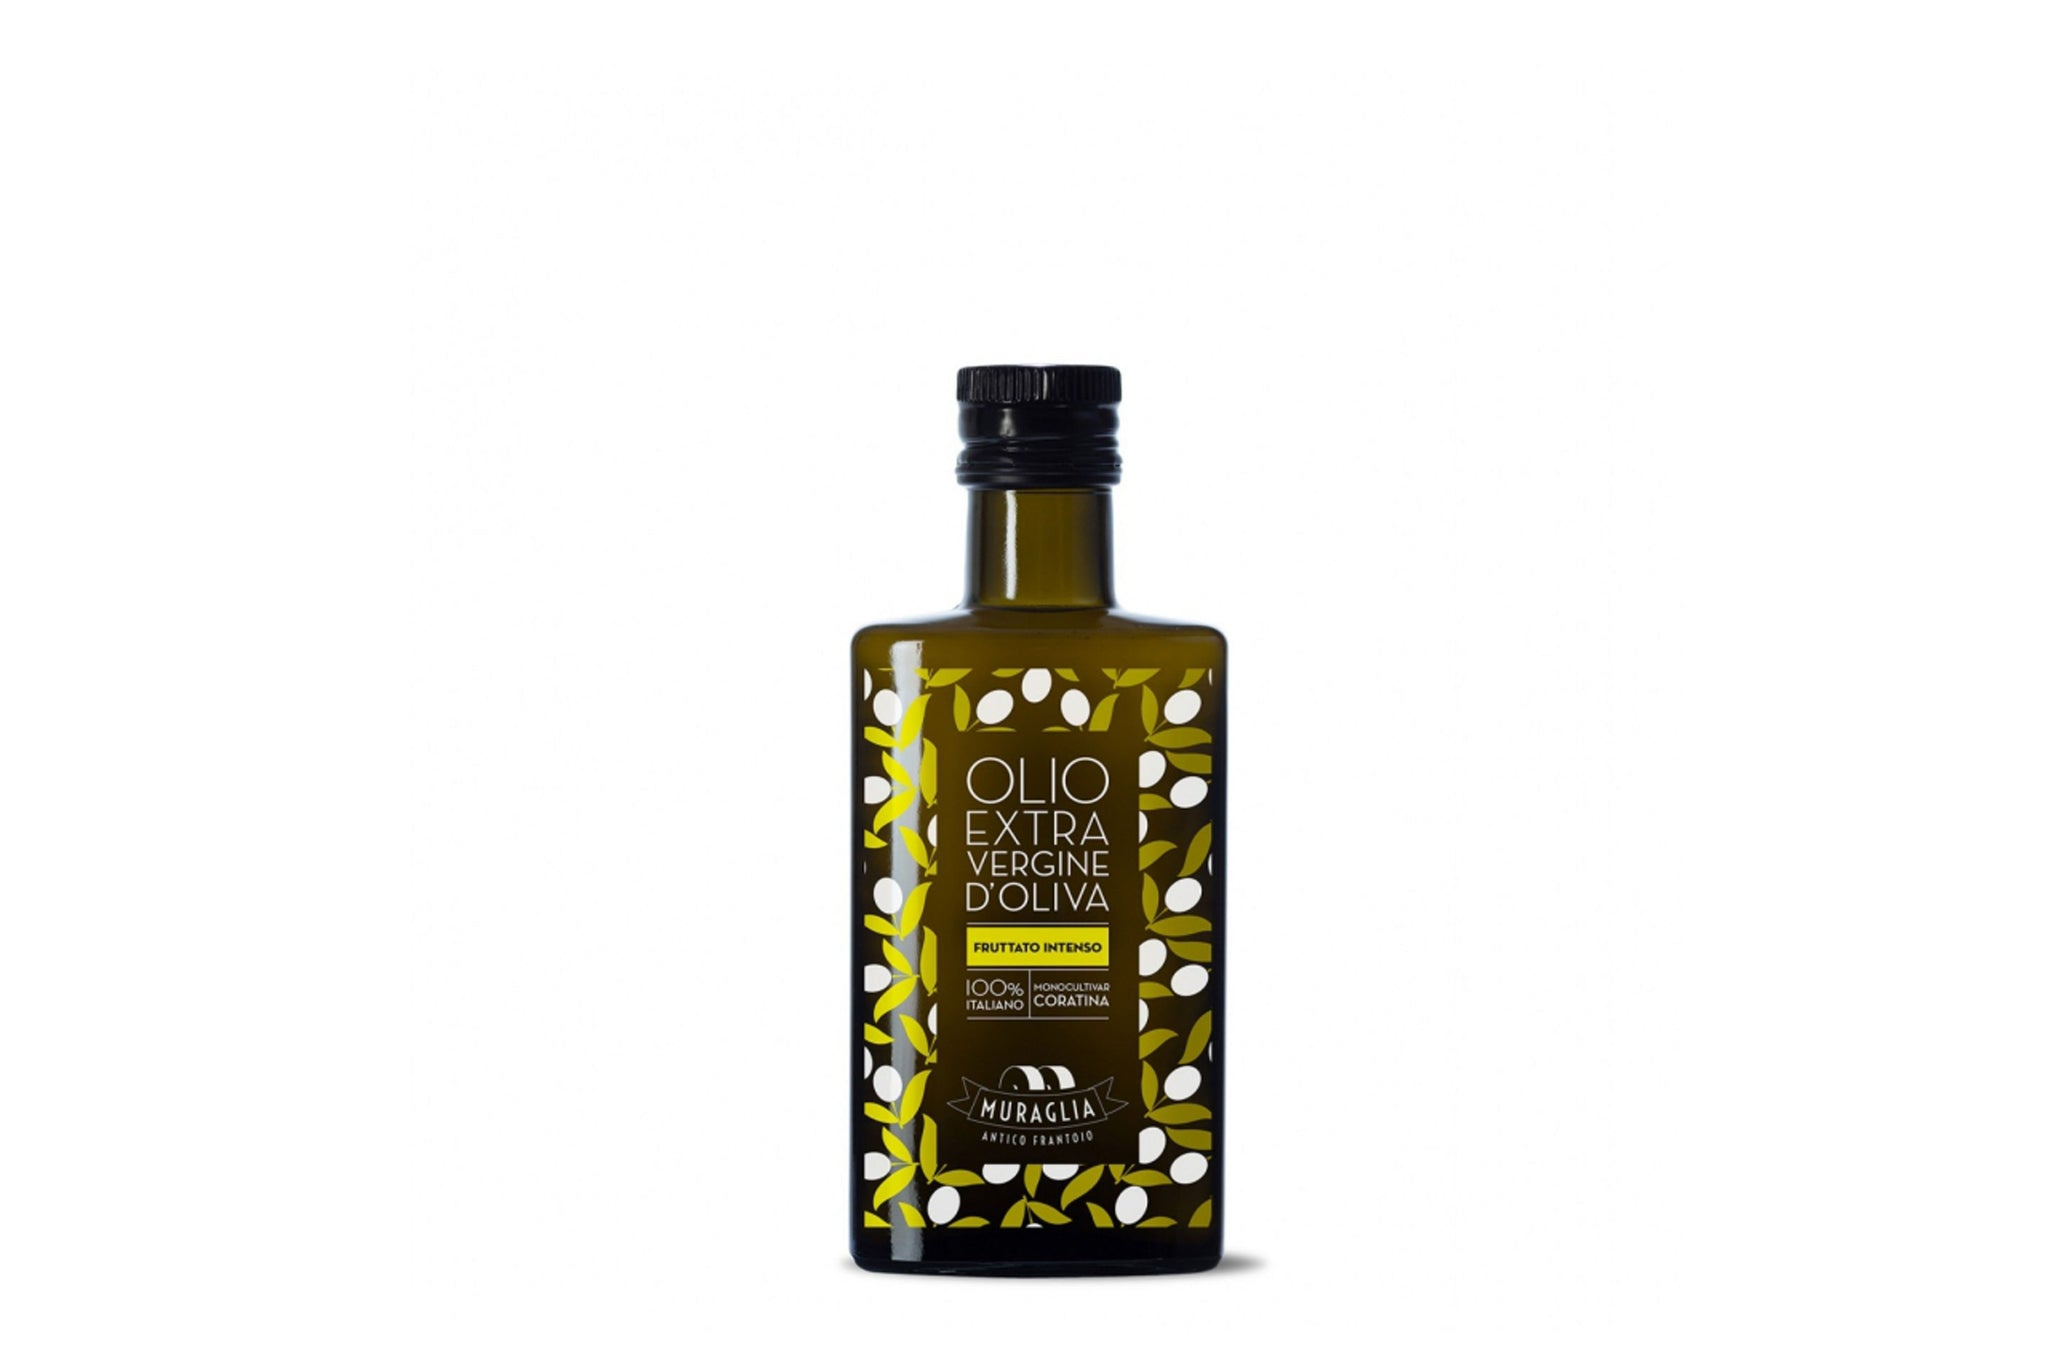 Frantoio Muraglia Essenza Intense Fruity Italian Extra Virgin Olive Oil 250ml